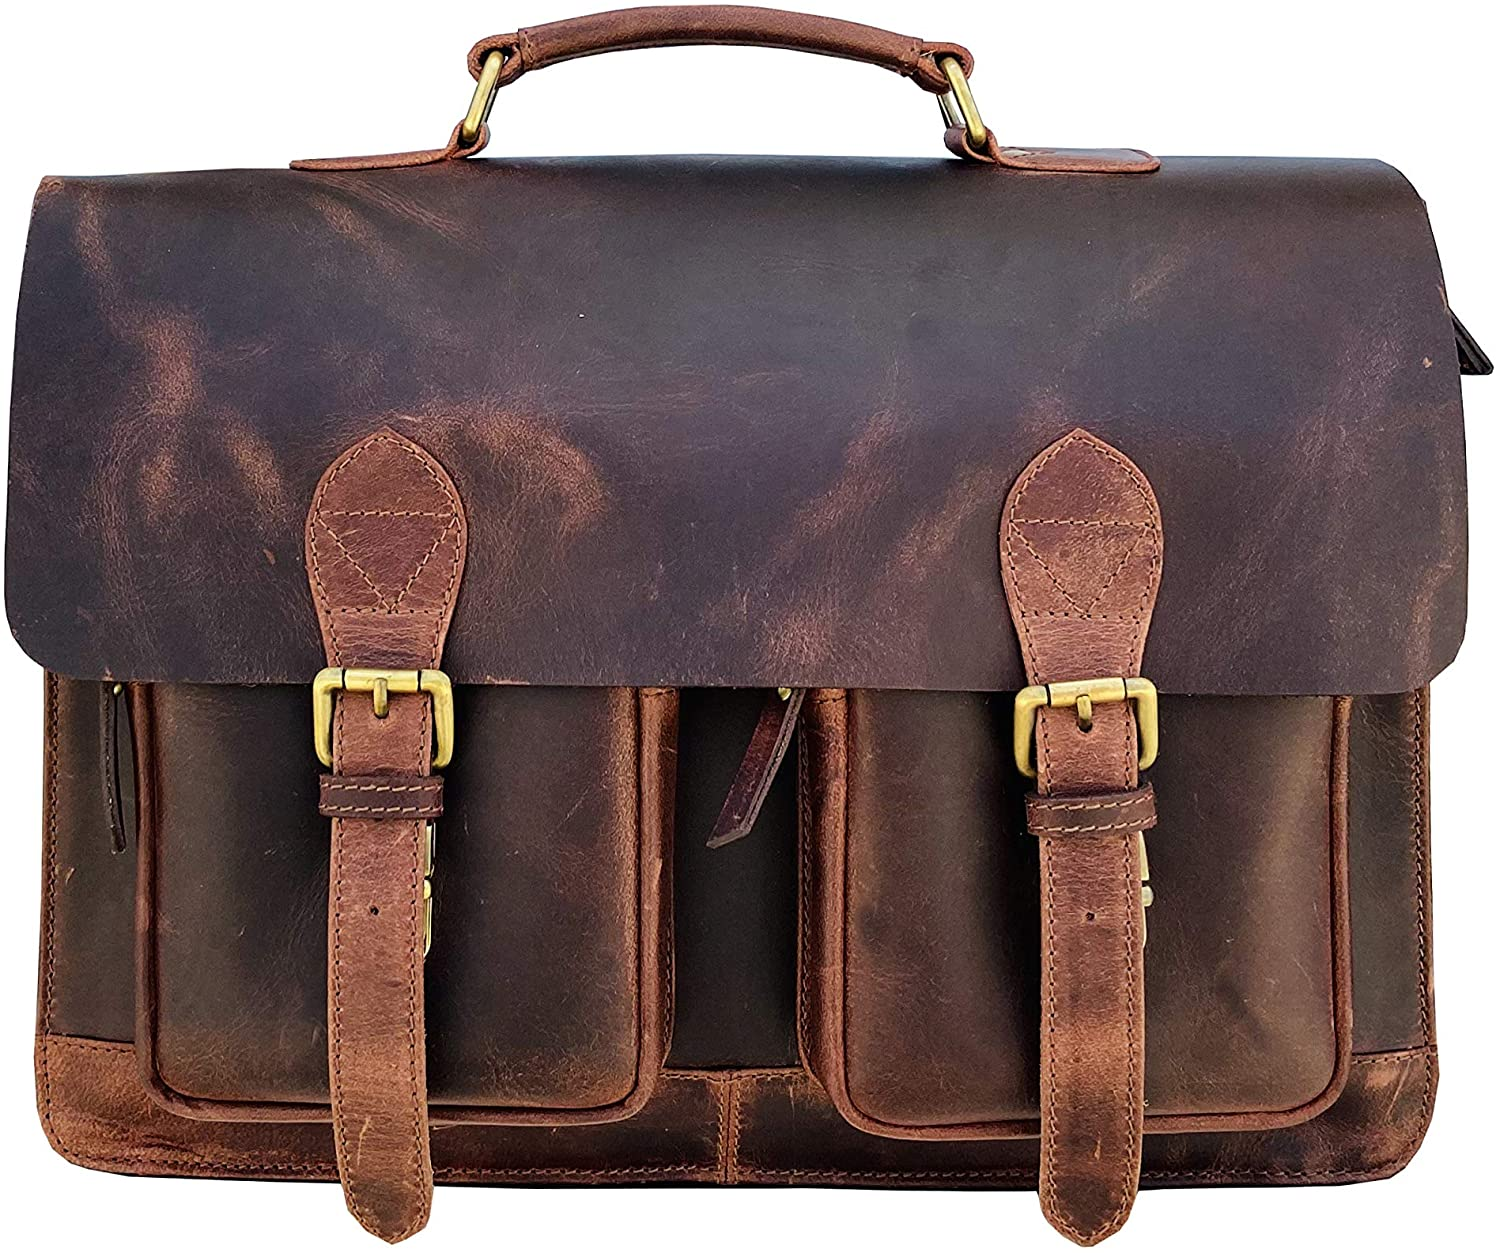 Leather Messenger Bag| Leather Briefcase Bag| Leather Satchel Bag| Leather Crossbody Bag| Leather Computer Bag| Messenger Bag for Men| Briefcase Bag for Men| Travel Bag